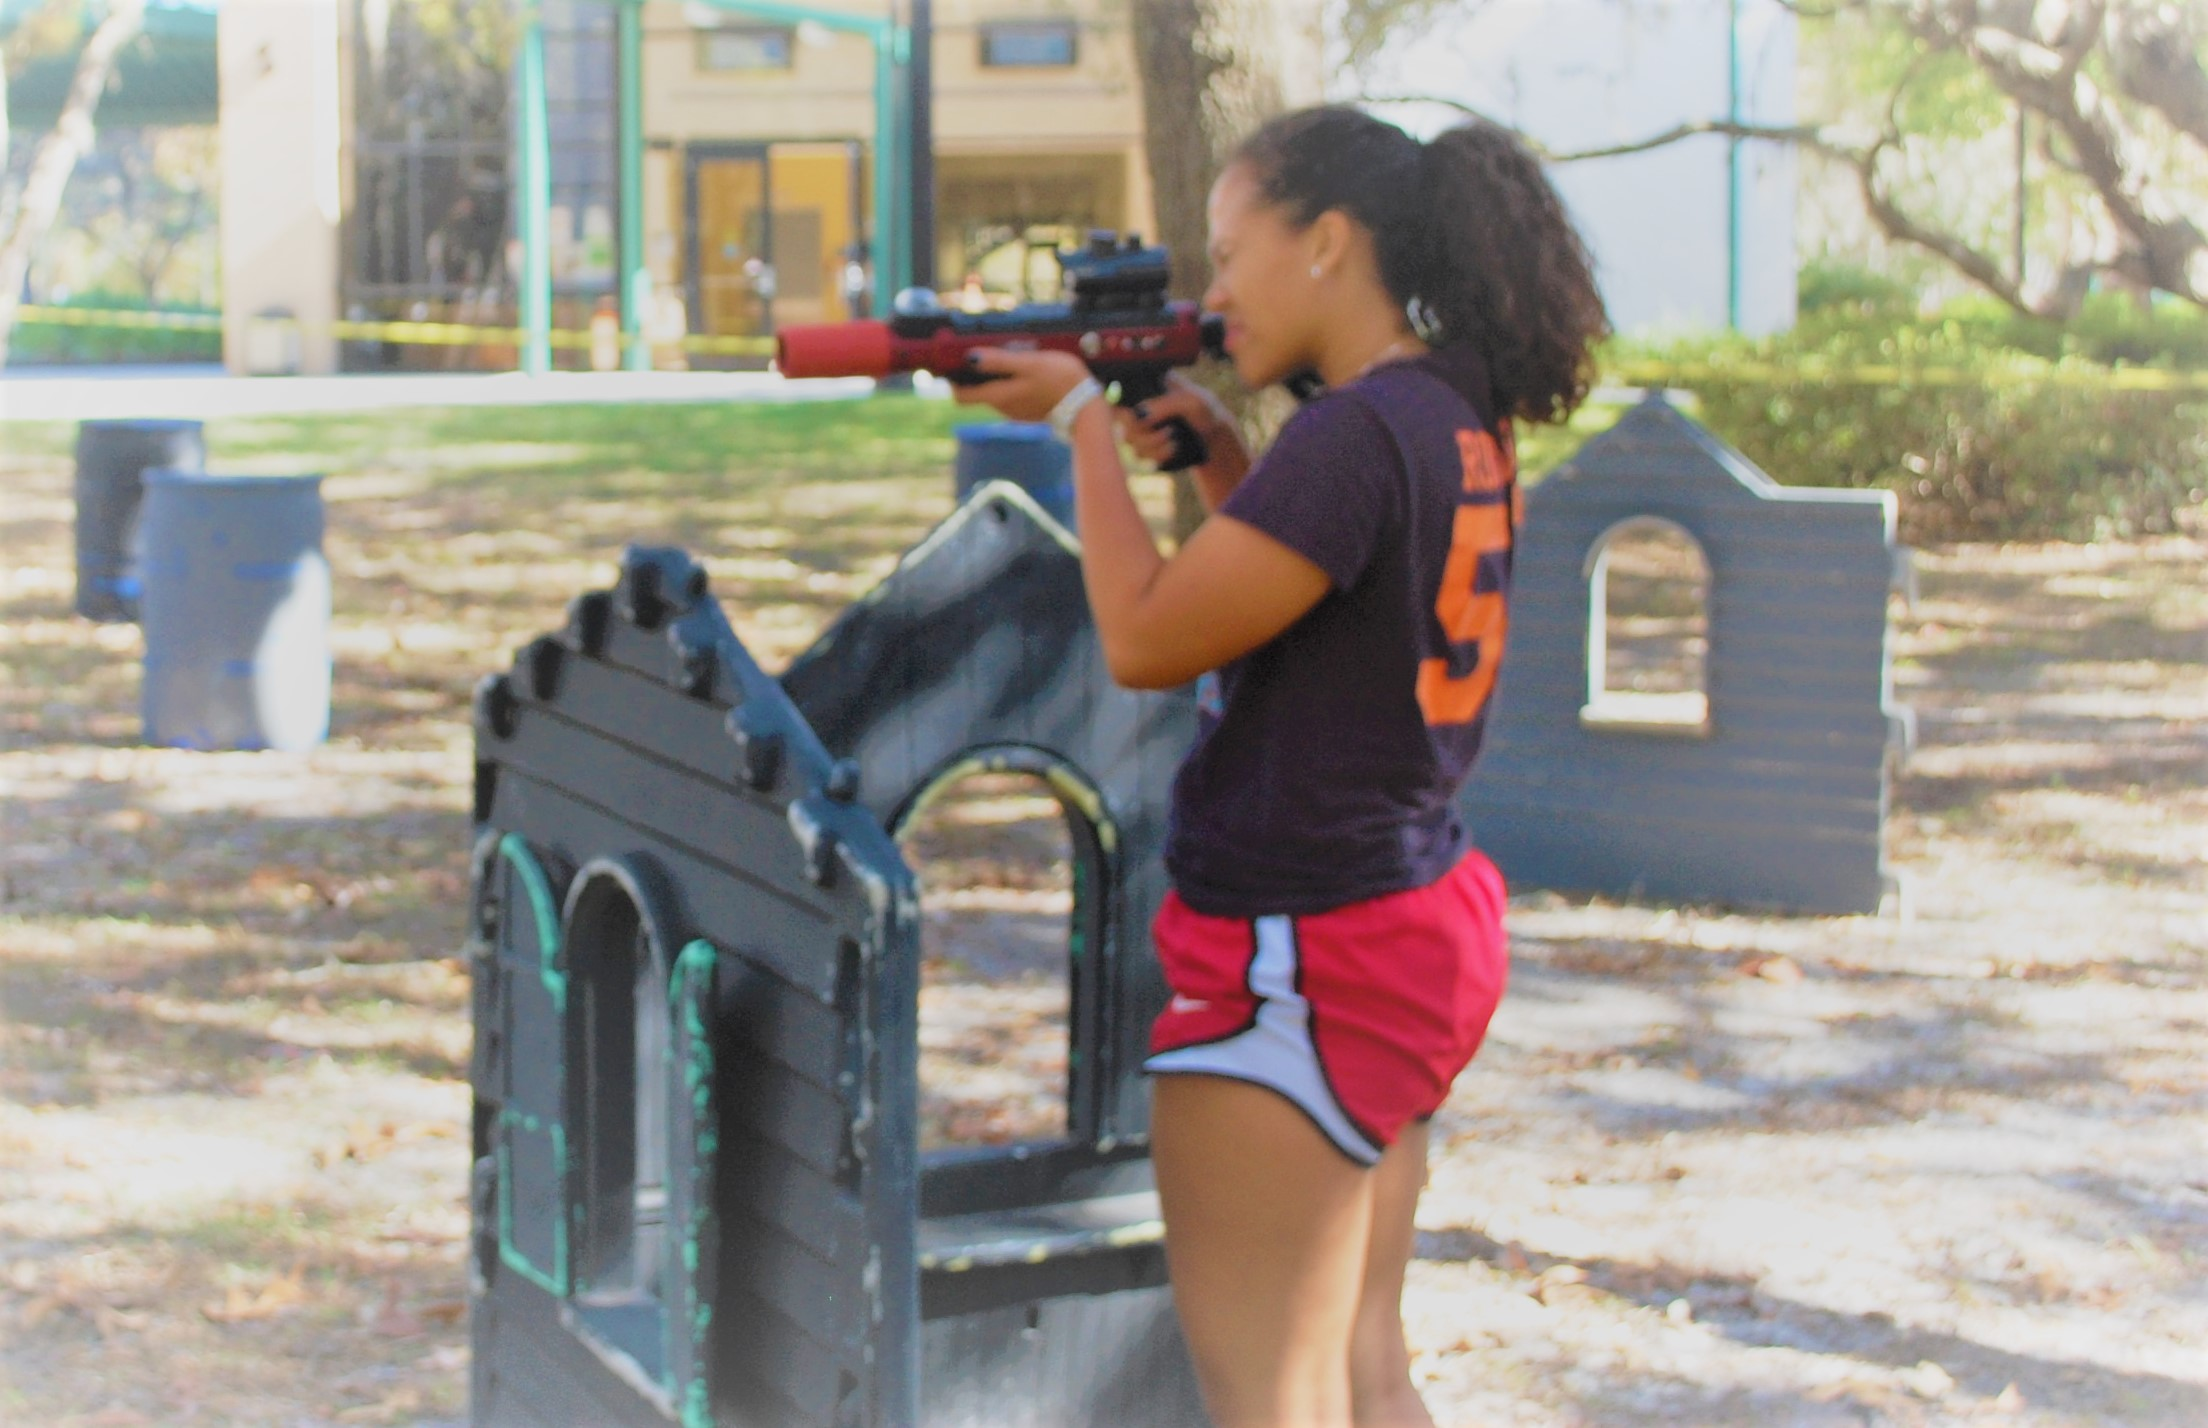 College Events in Florida - Stealth Mobile Laser Tag (55)